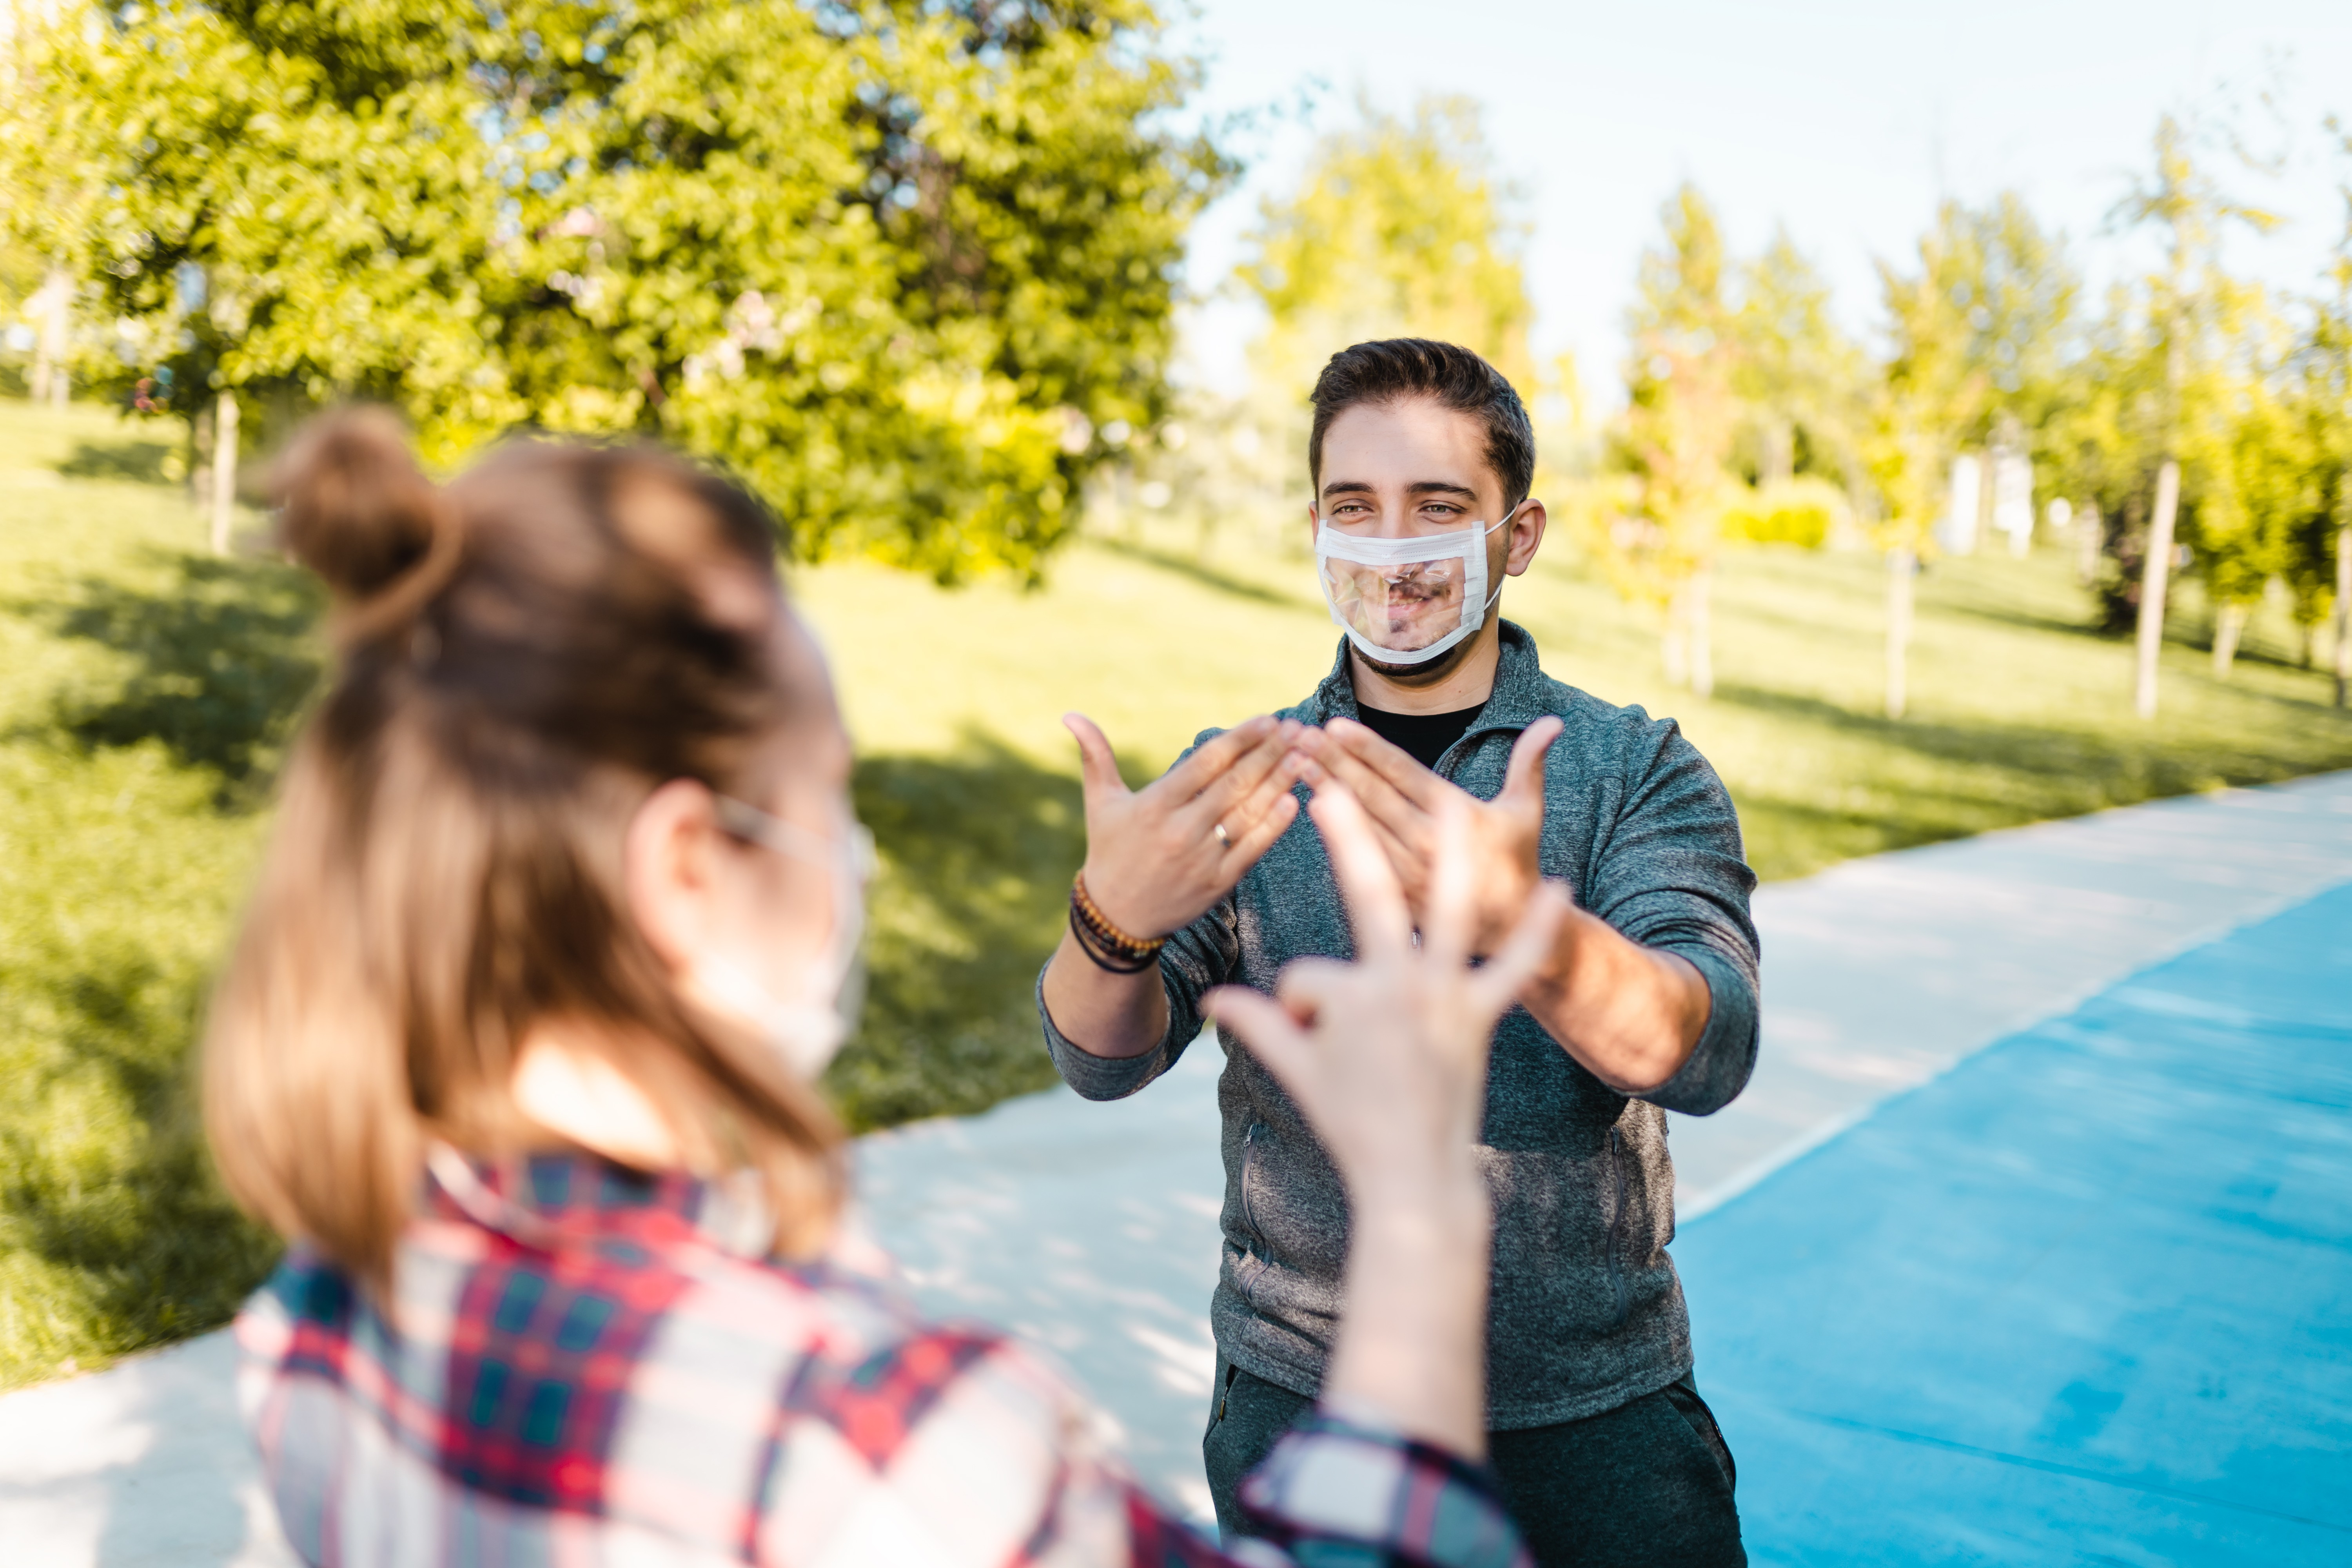 Two people standing outside communicating through sign language with a clear mask on the face